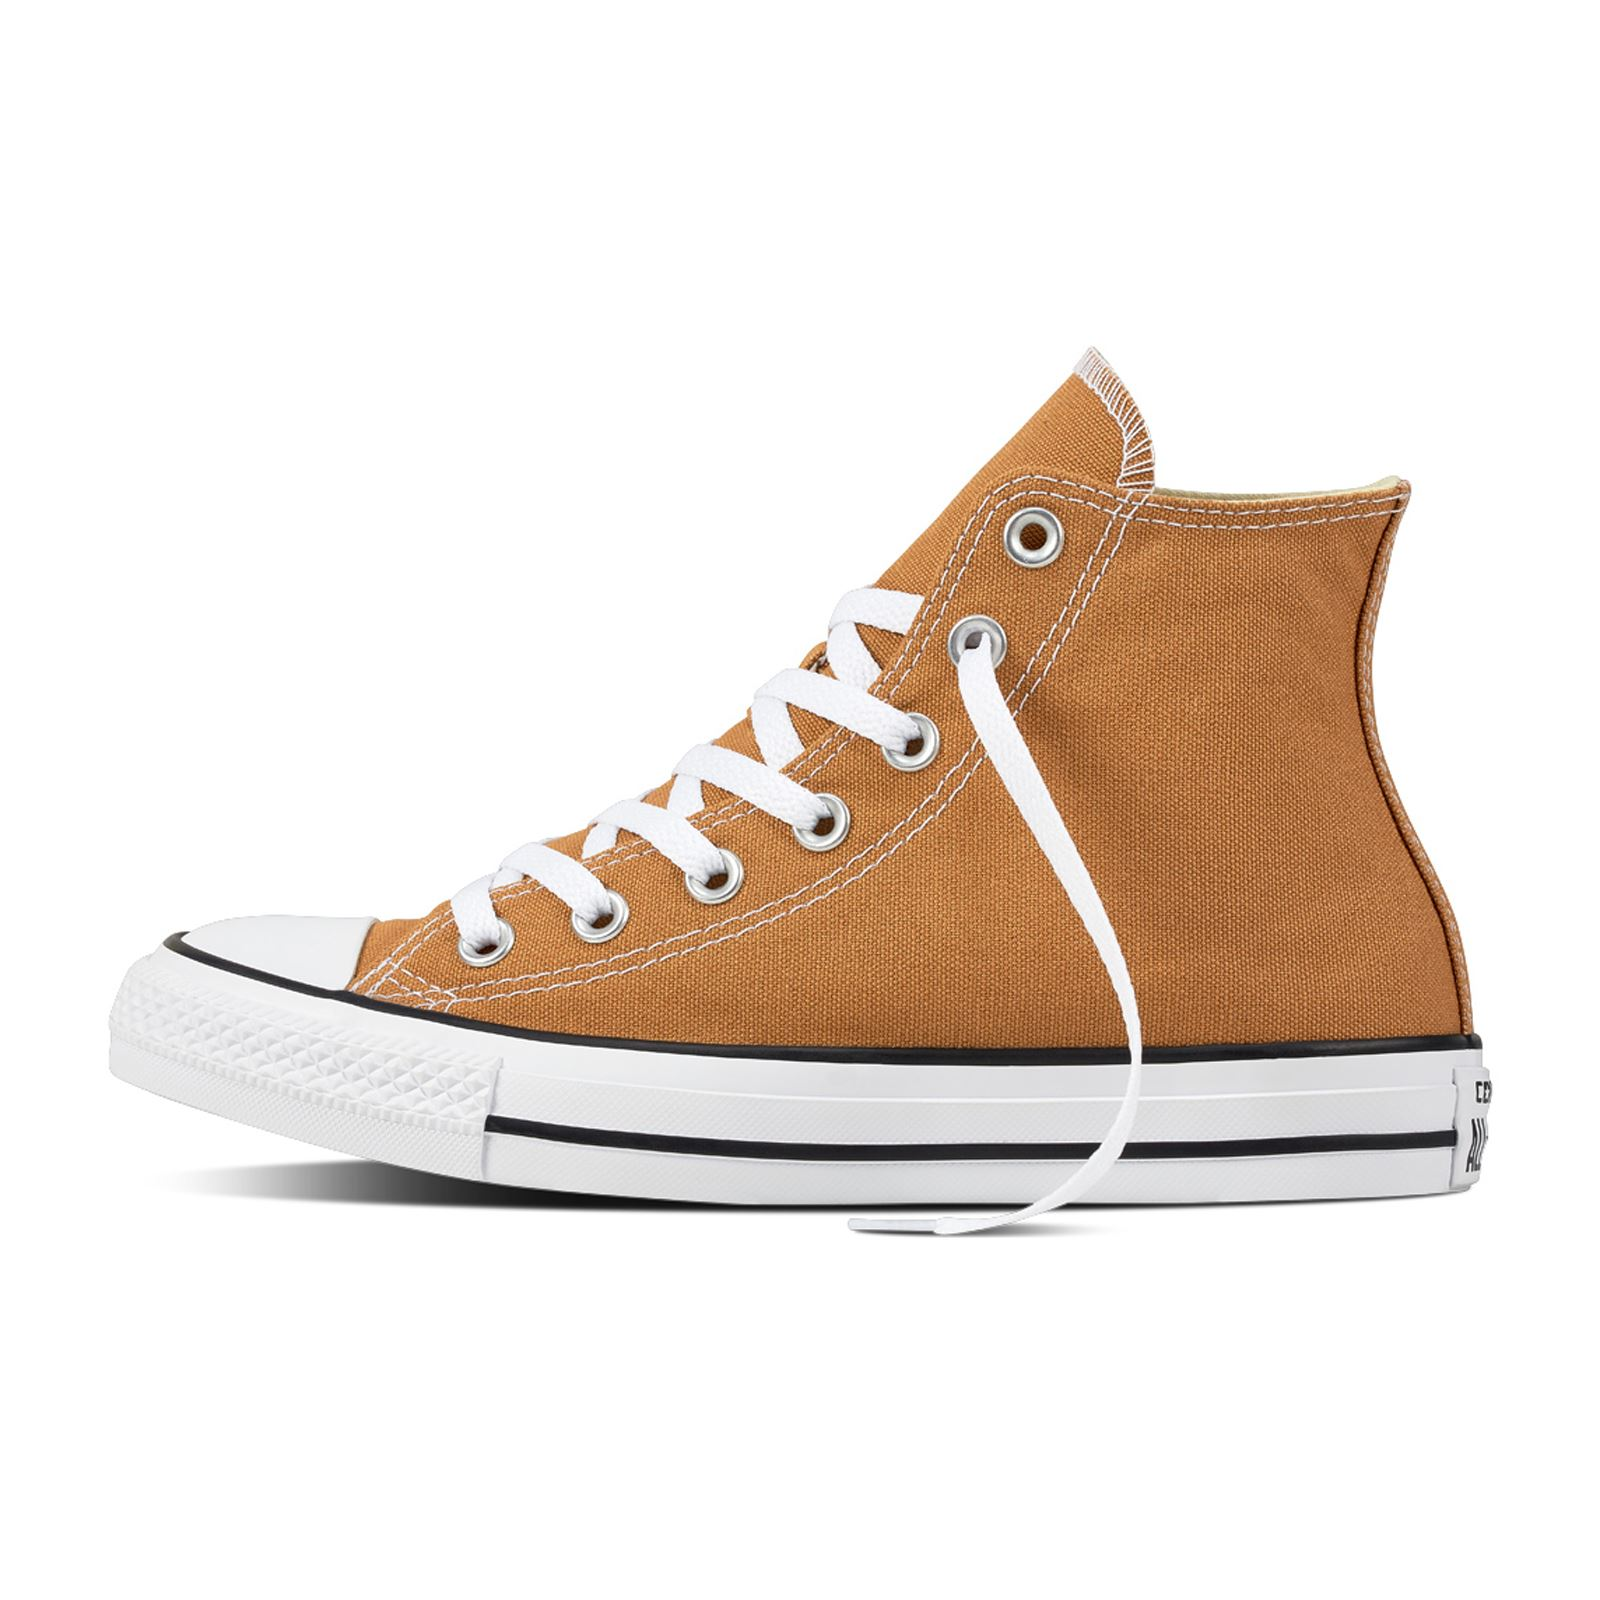 Converse Chuck Taylor All Star Hi - Baskets - camel